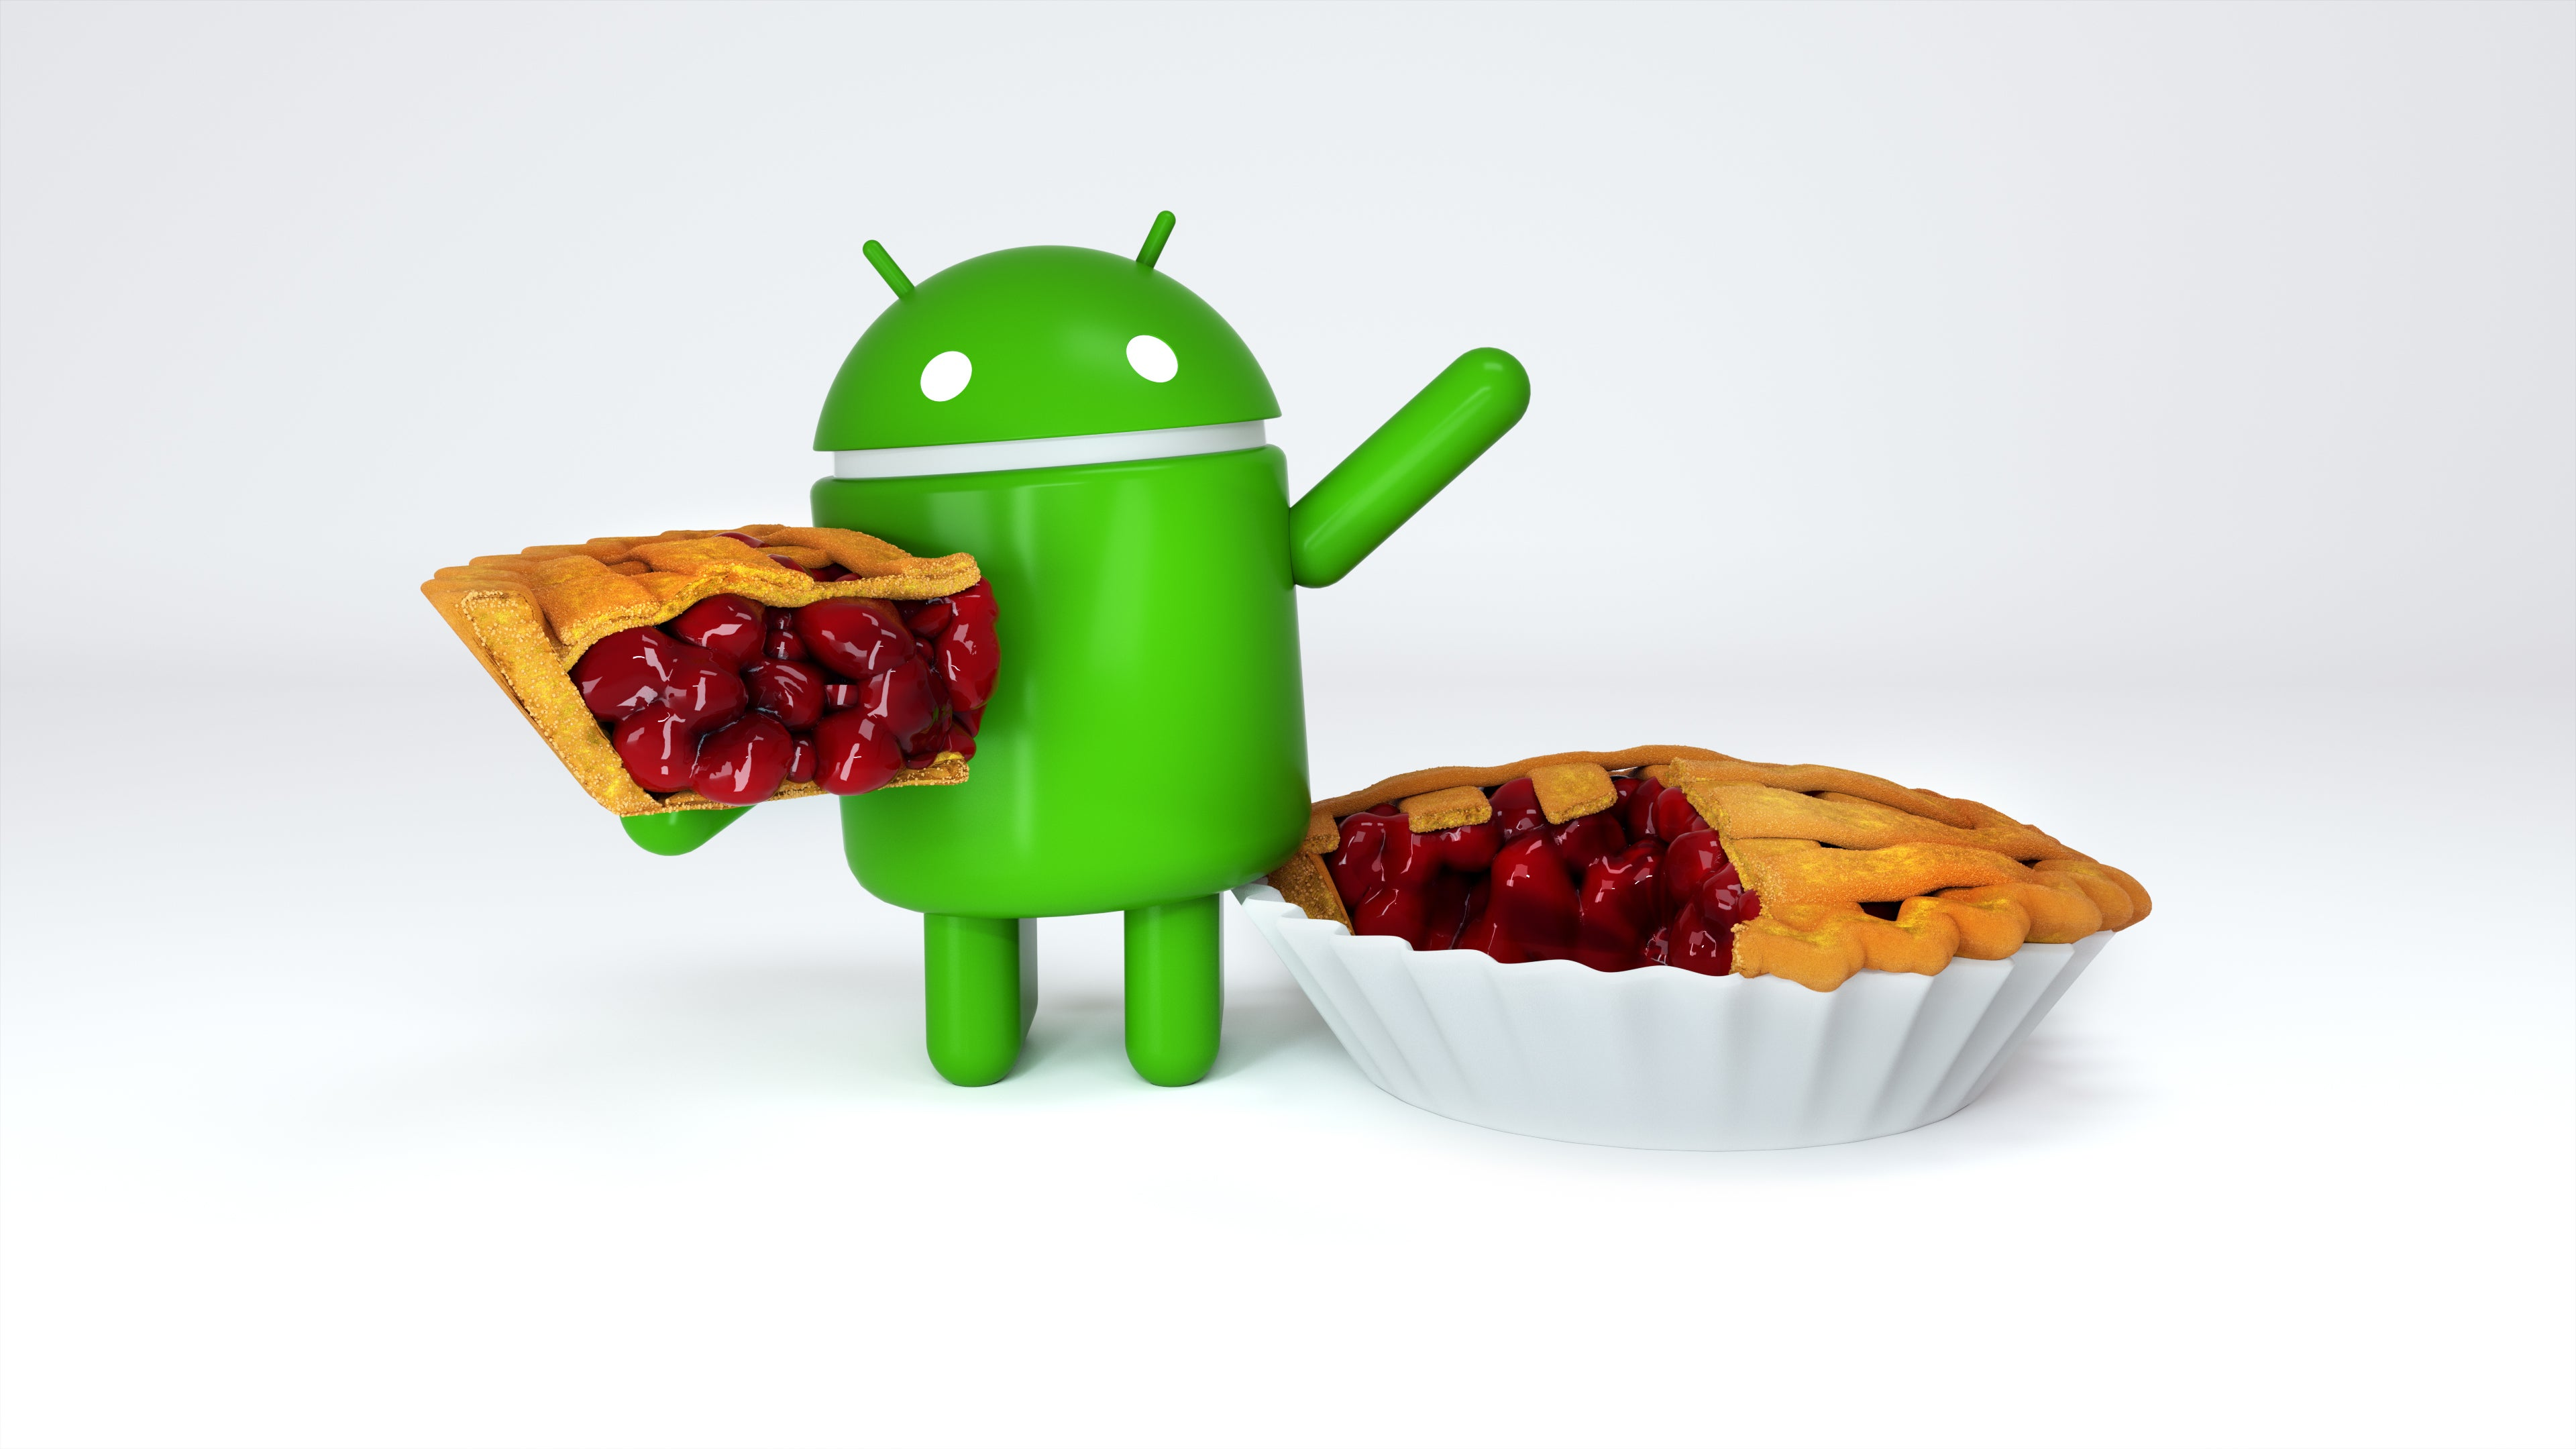 Android P Is Now Officially Android 9 Pie